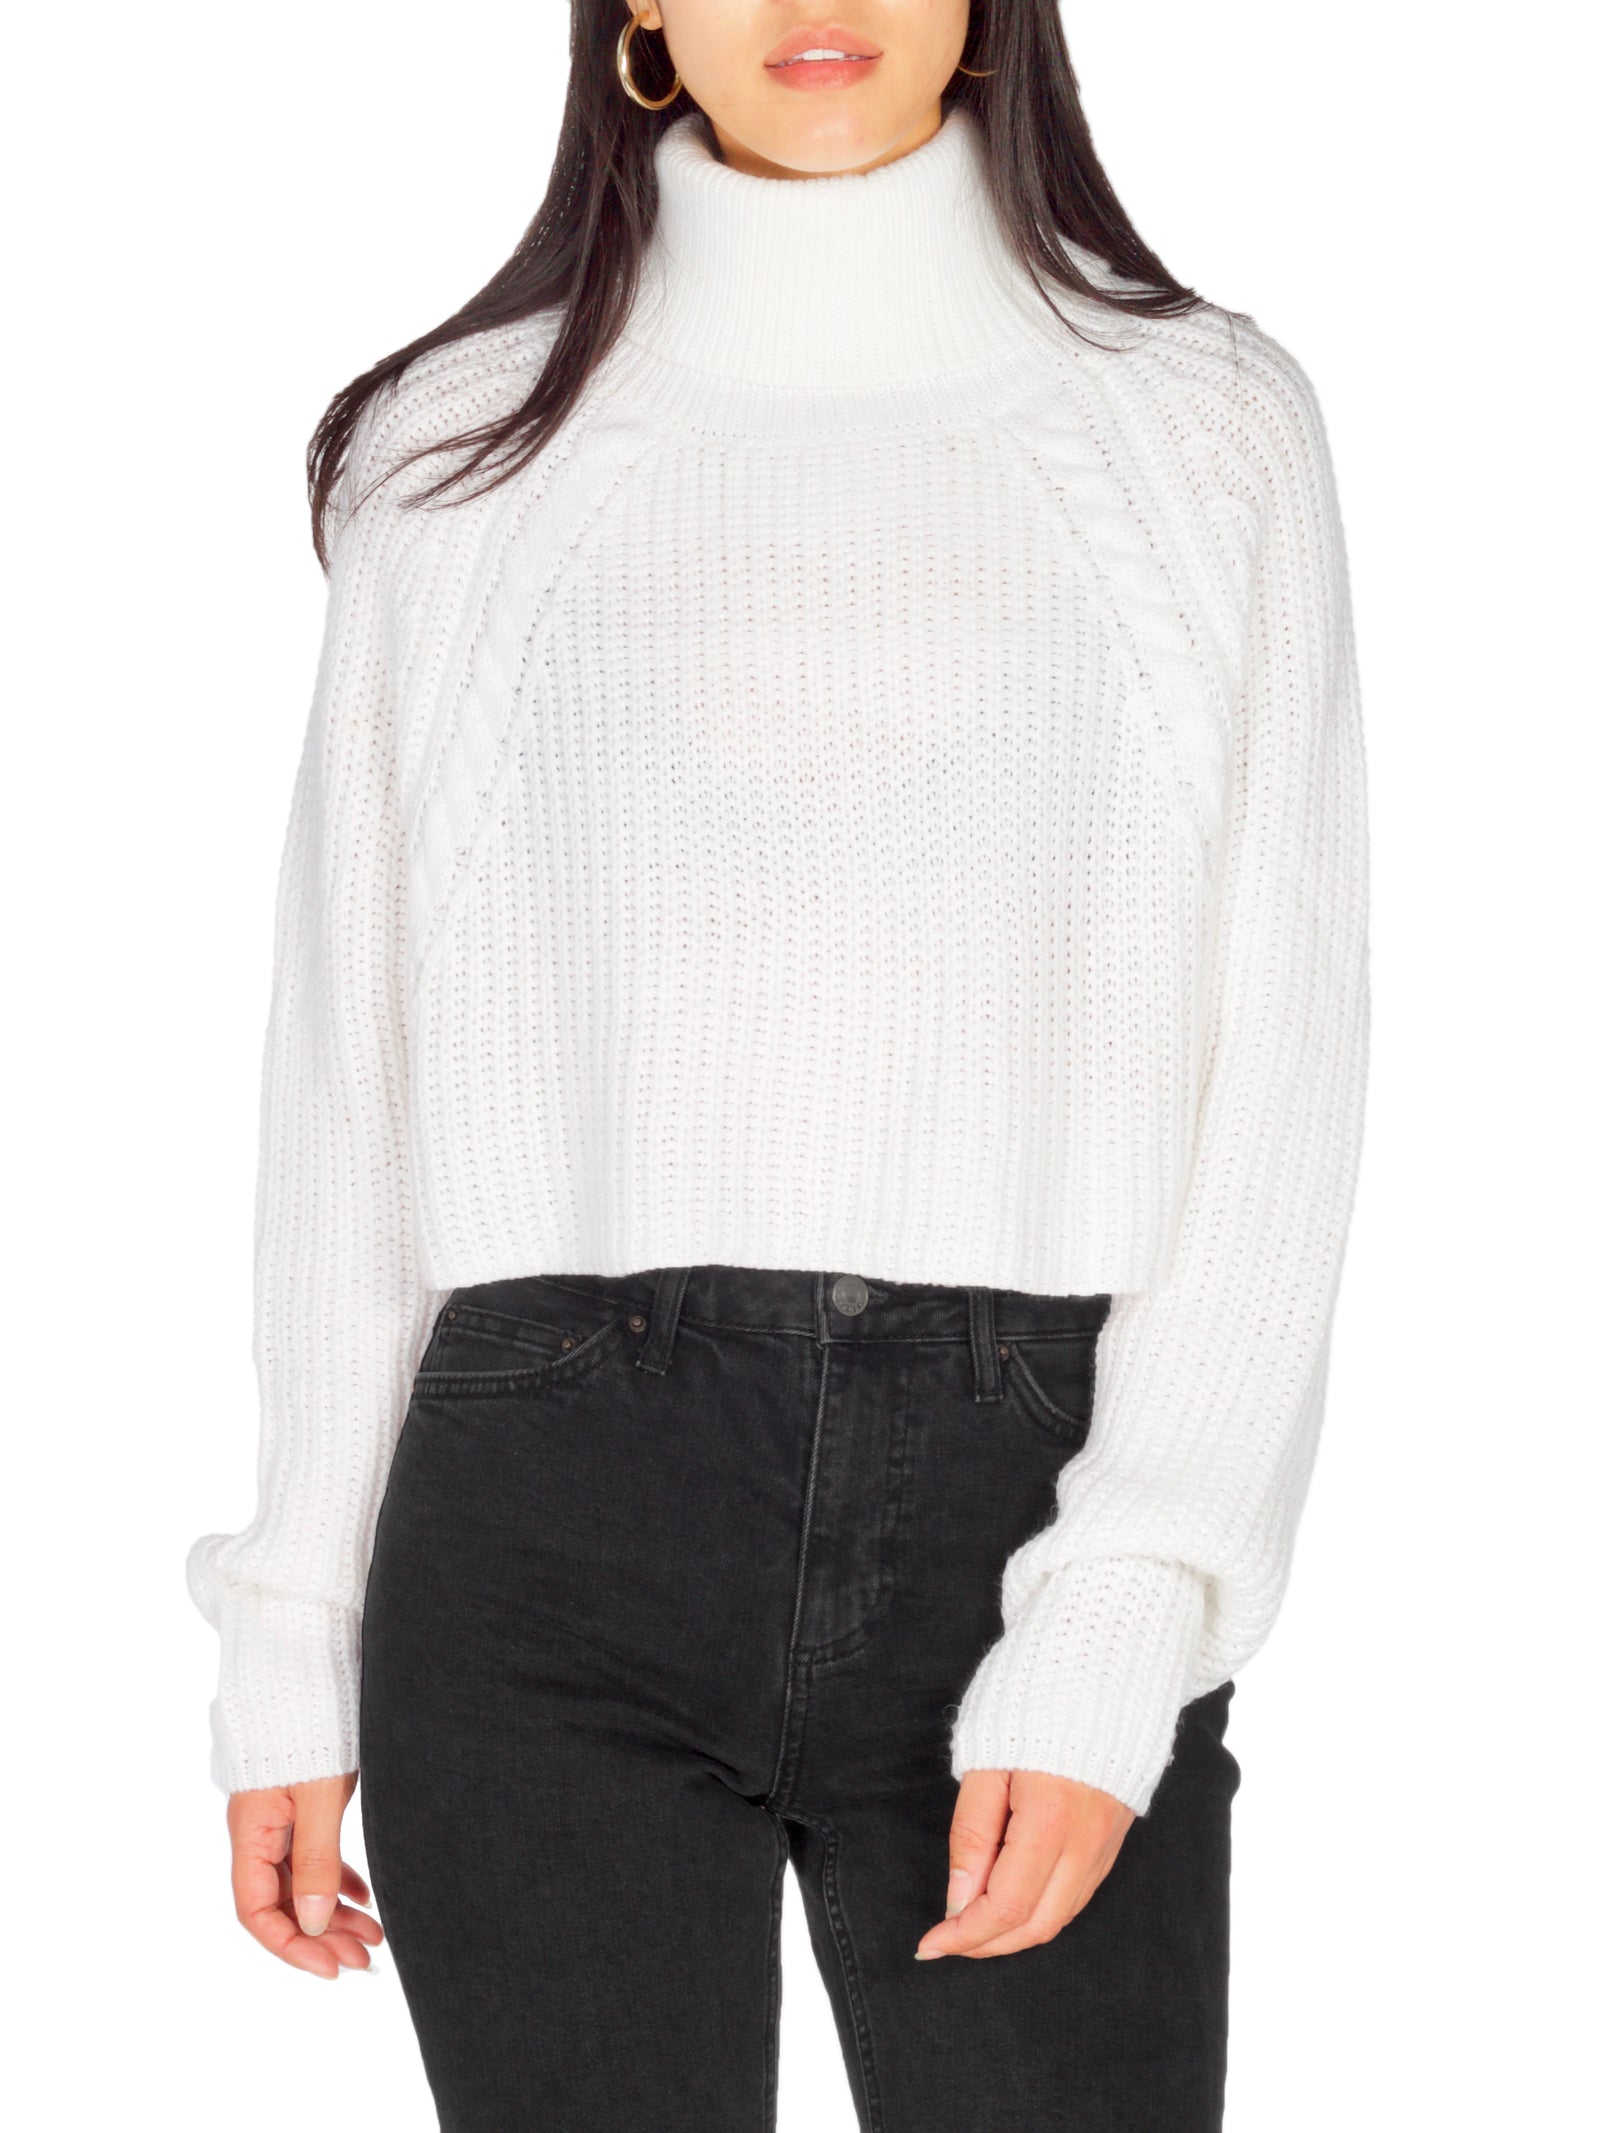 HAILEY White Knit Crop - PRADEGAL